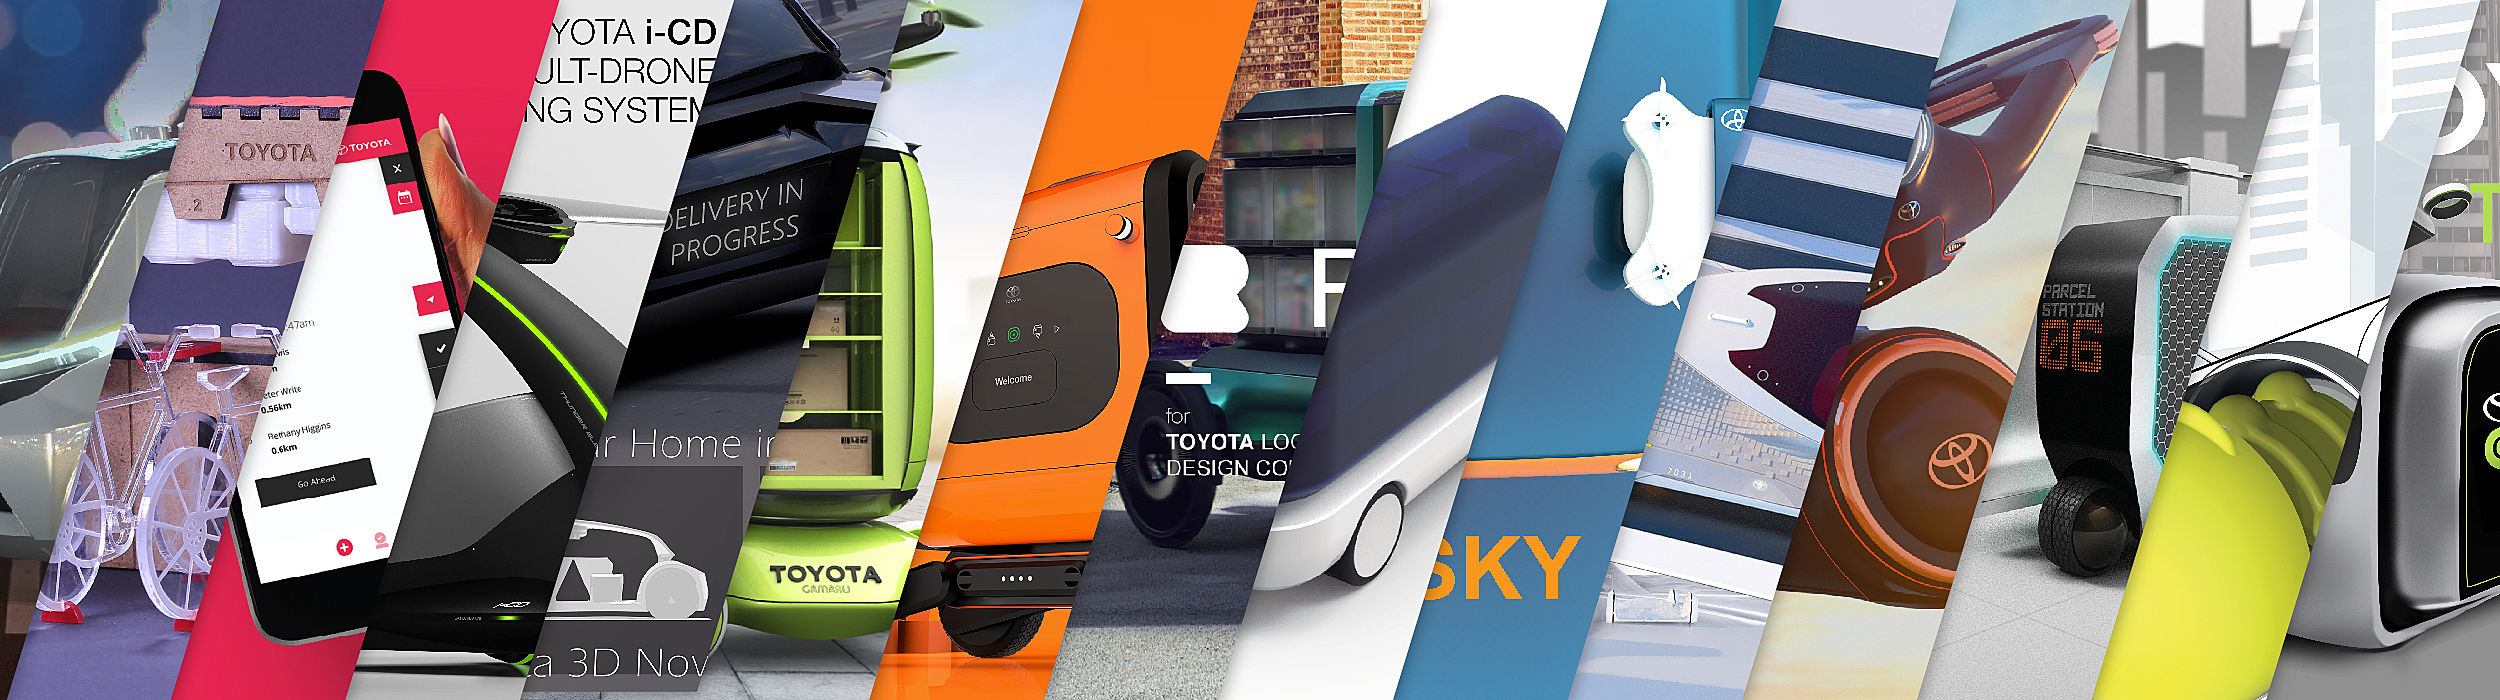 Toyota Logistic Design Competition submissions